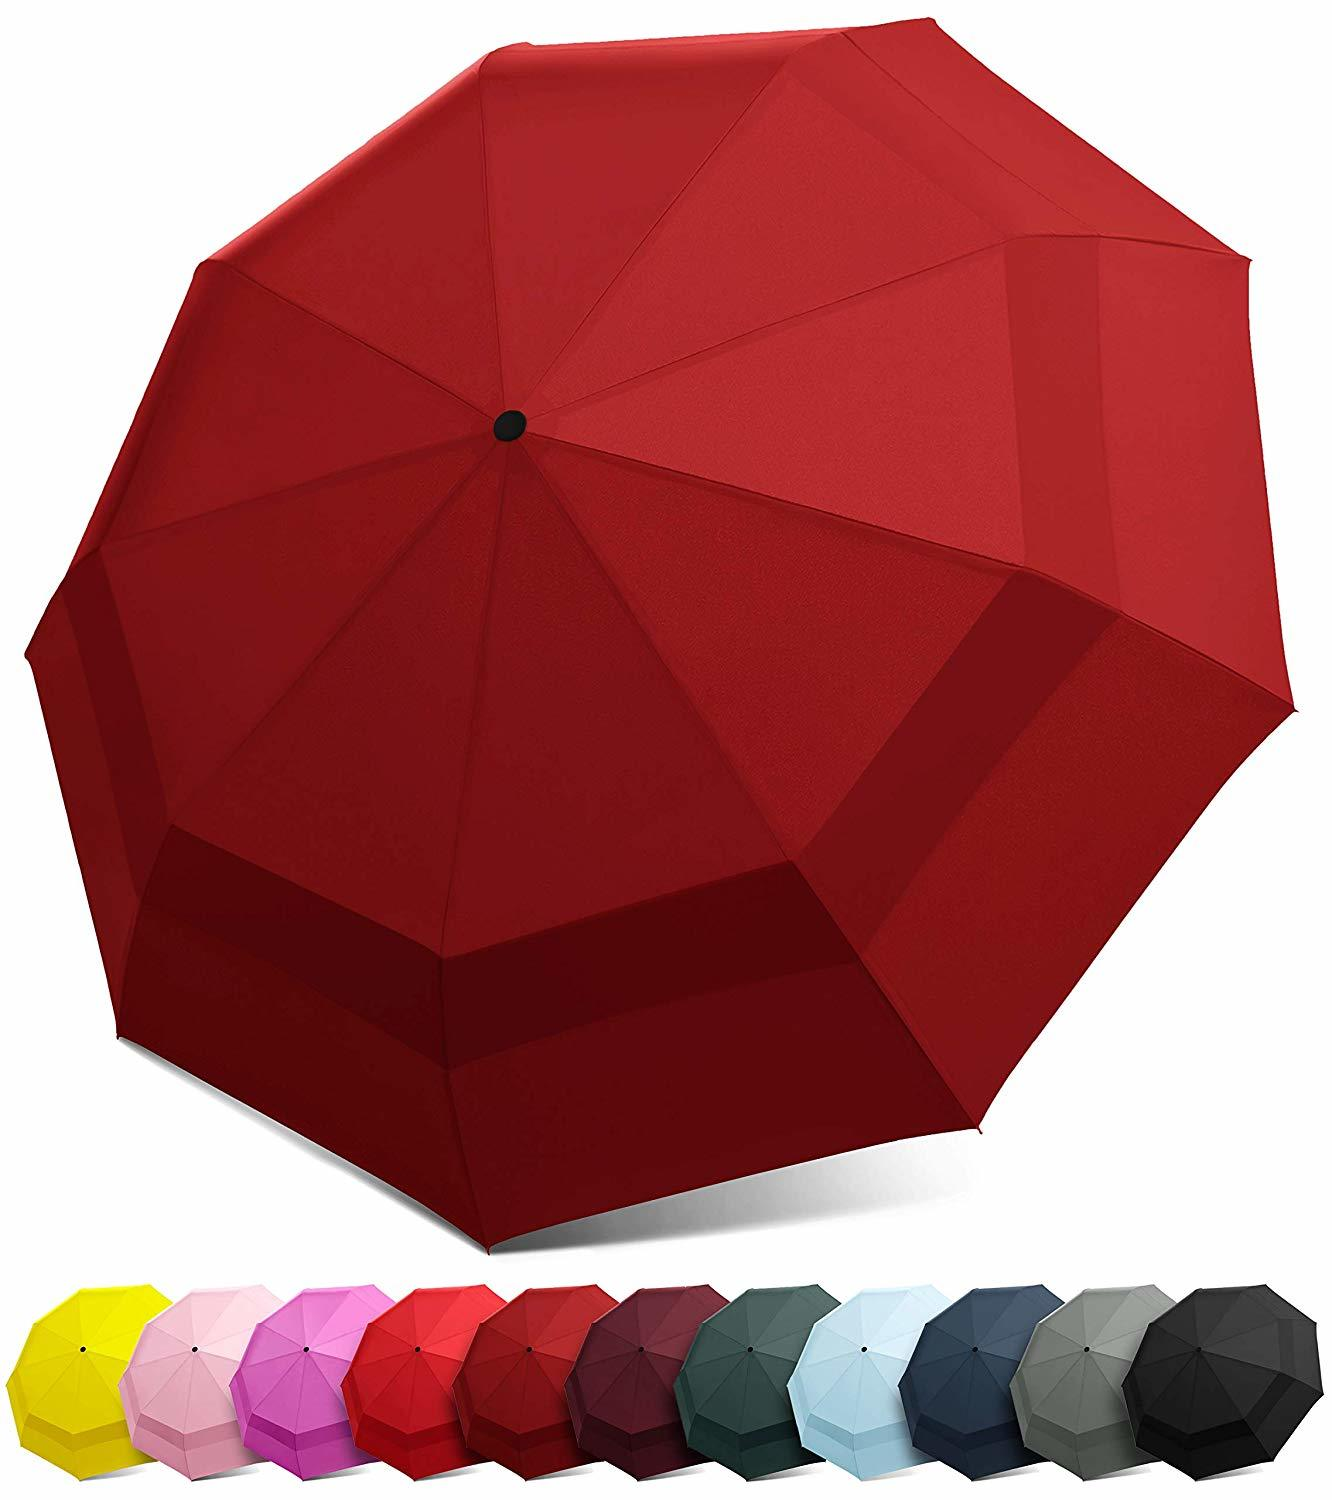 ​EEZ-Y Compact Travel Umbrella with Windproof Double Canopy